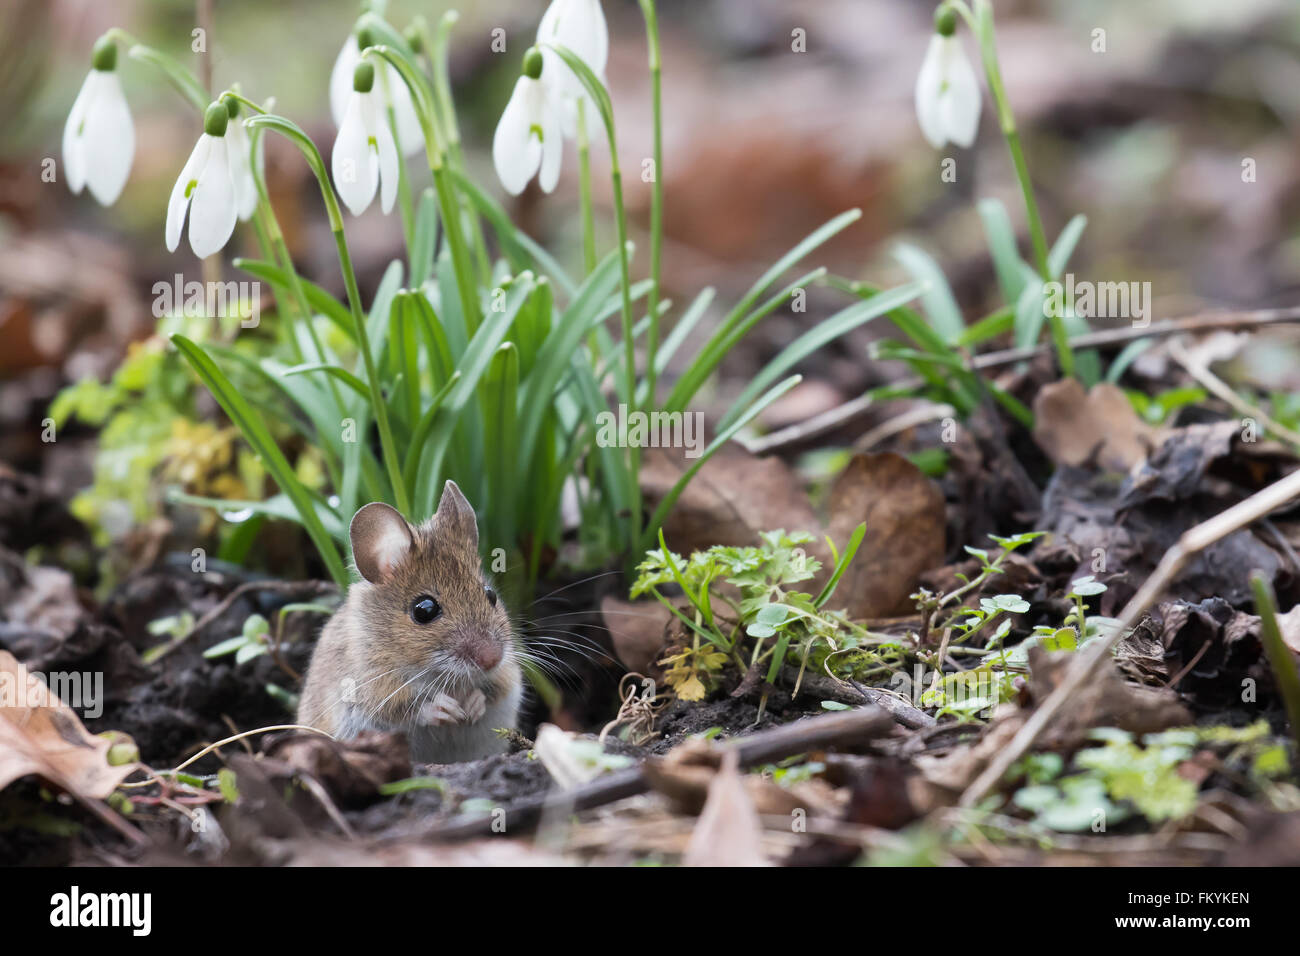 House mouse (Mus musculus) looking out of its burrow, Hesse, Germany - Stock Image